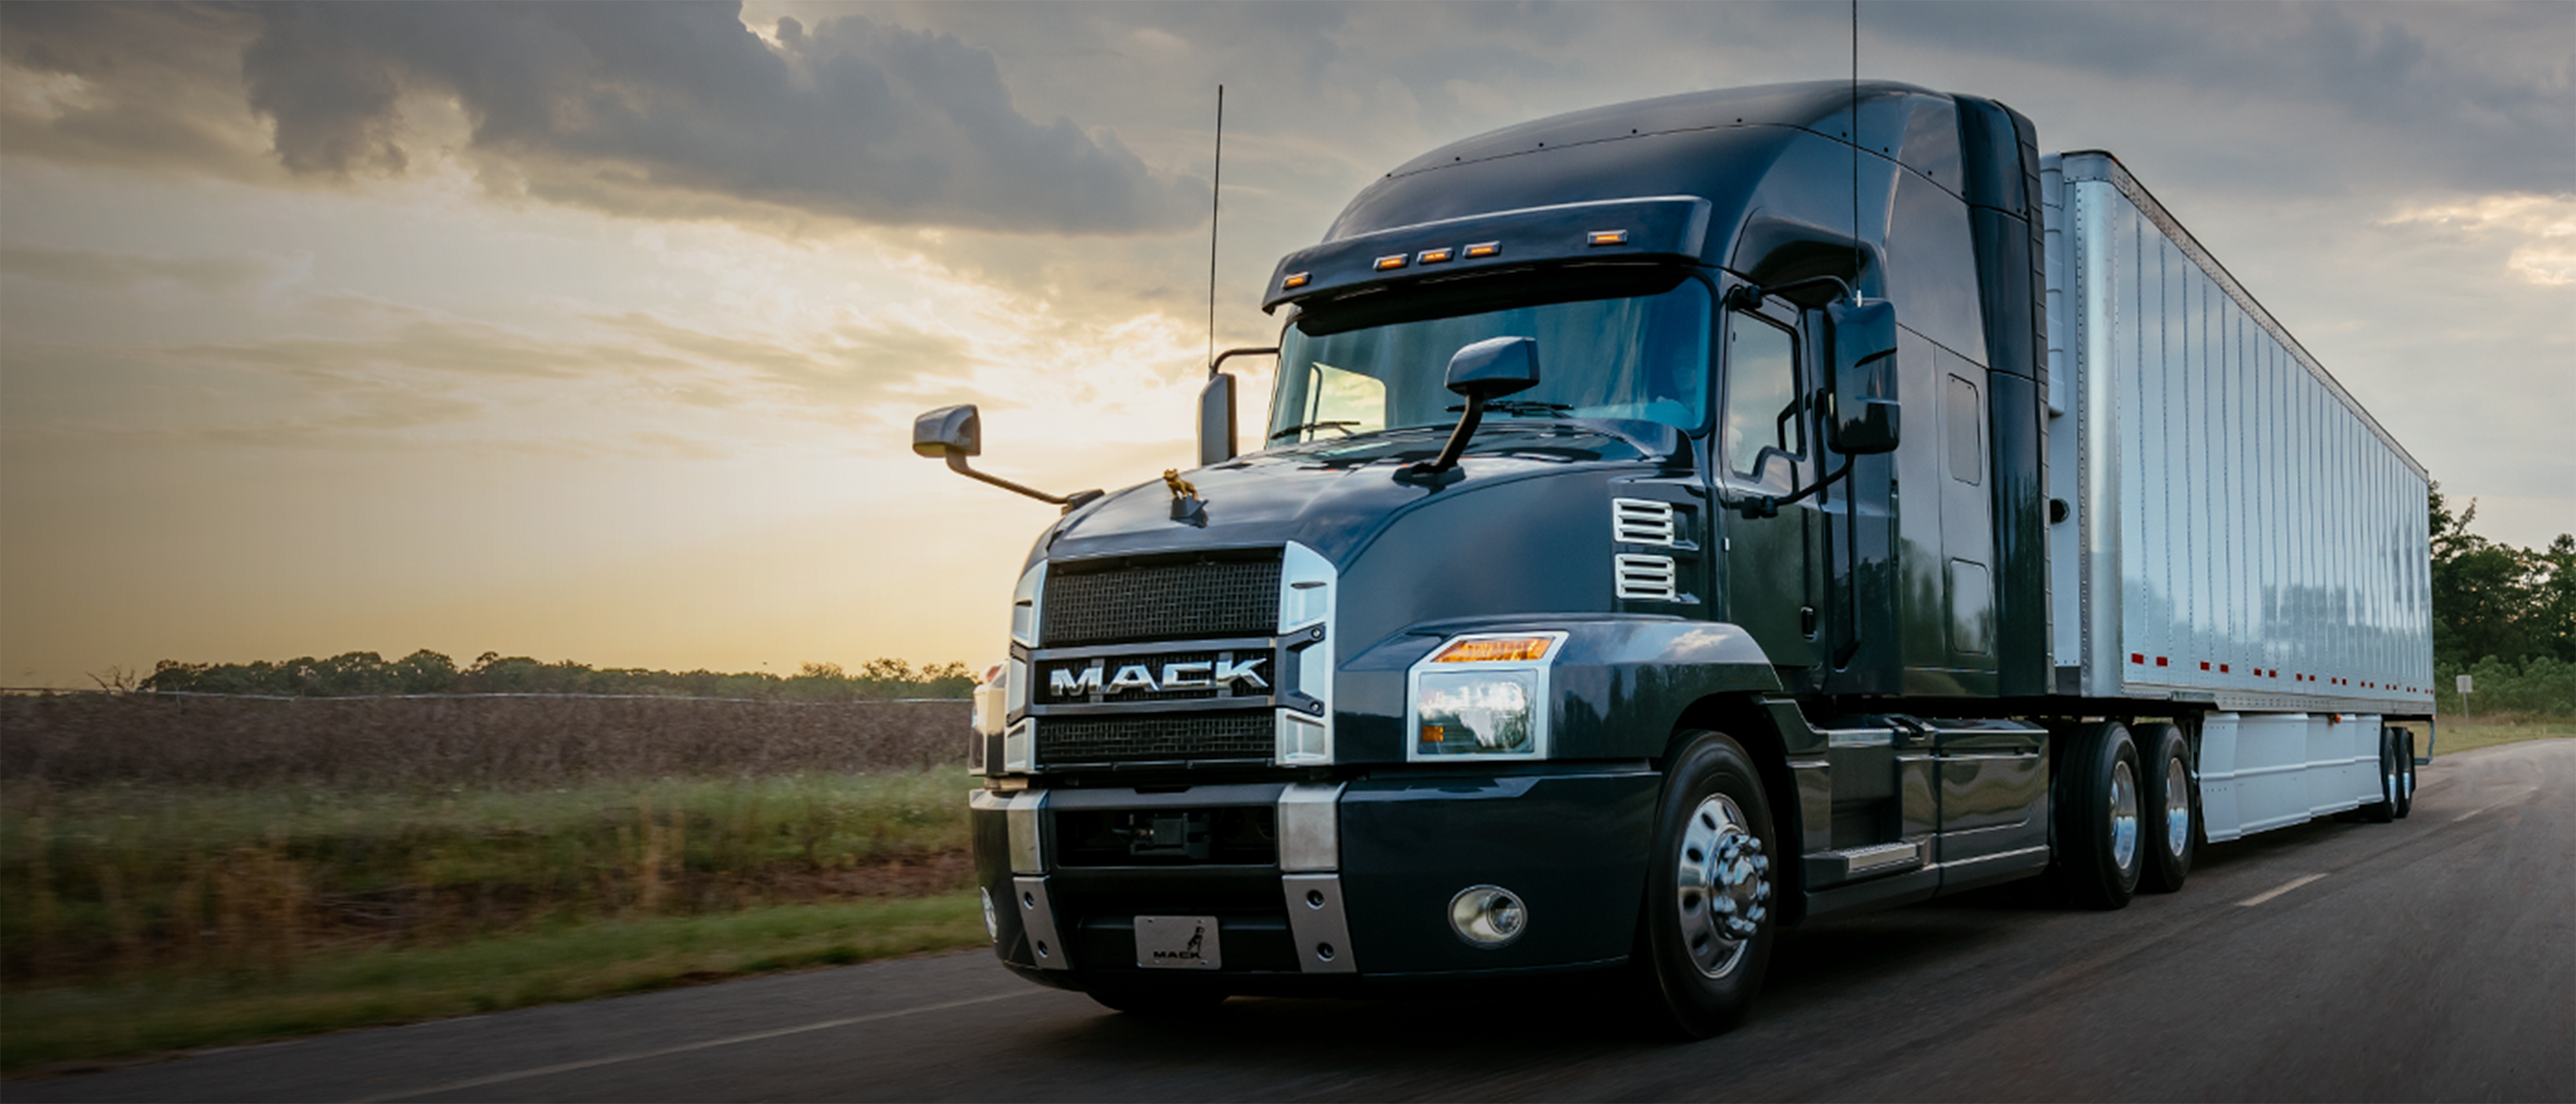 Mack R Series Wiring Diagram Page 4 And Schematics Model Truck Parts Product Diagrams U2022 Part Numbers